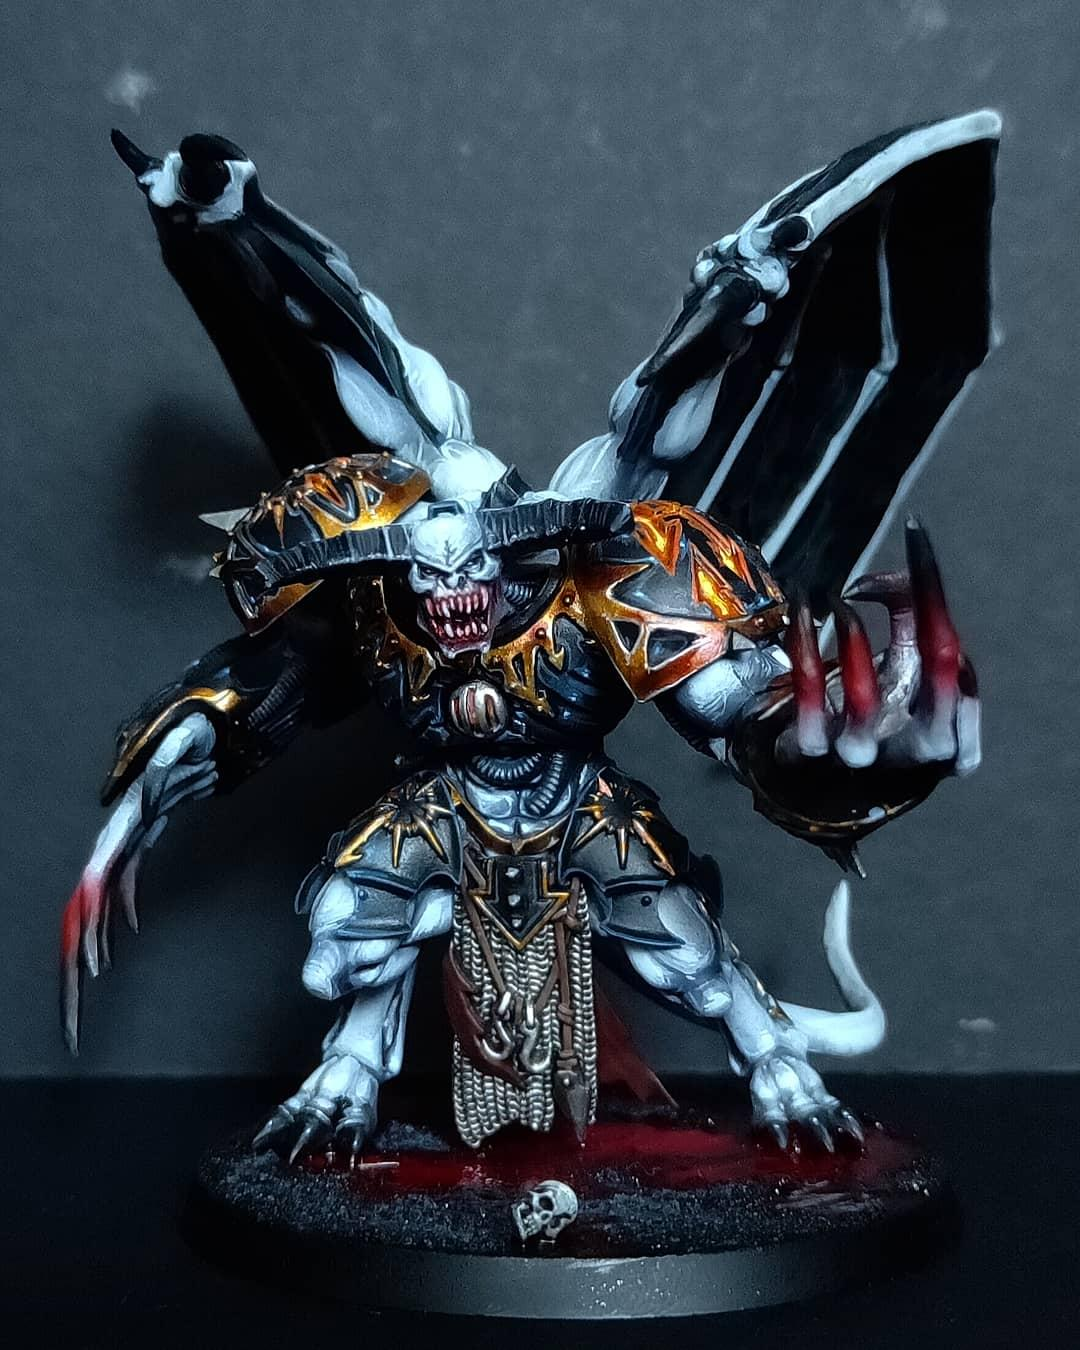 Black Legion, Chaos, Chaos Knight, Chaos Space Marines, Chaos Undivided, Daemon Prince, Heretic Astartes, Sin Eaters, Warhammer 40,000